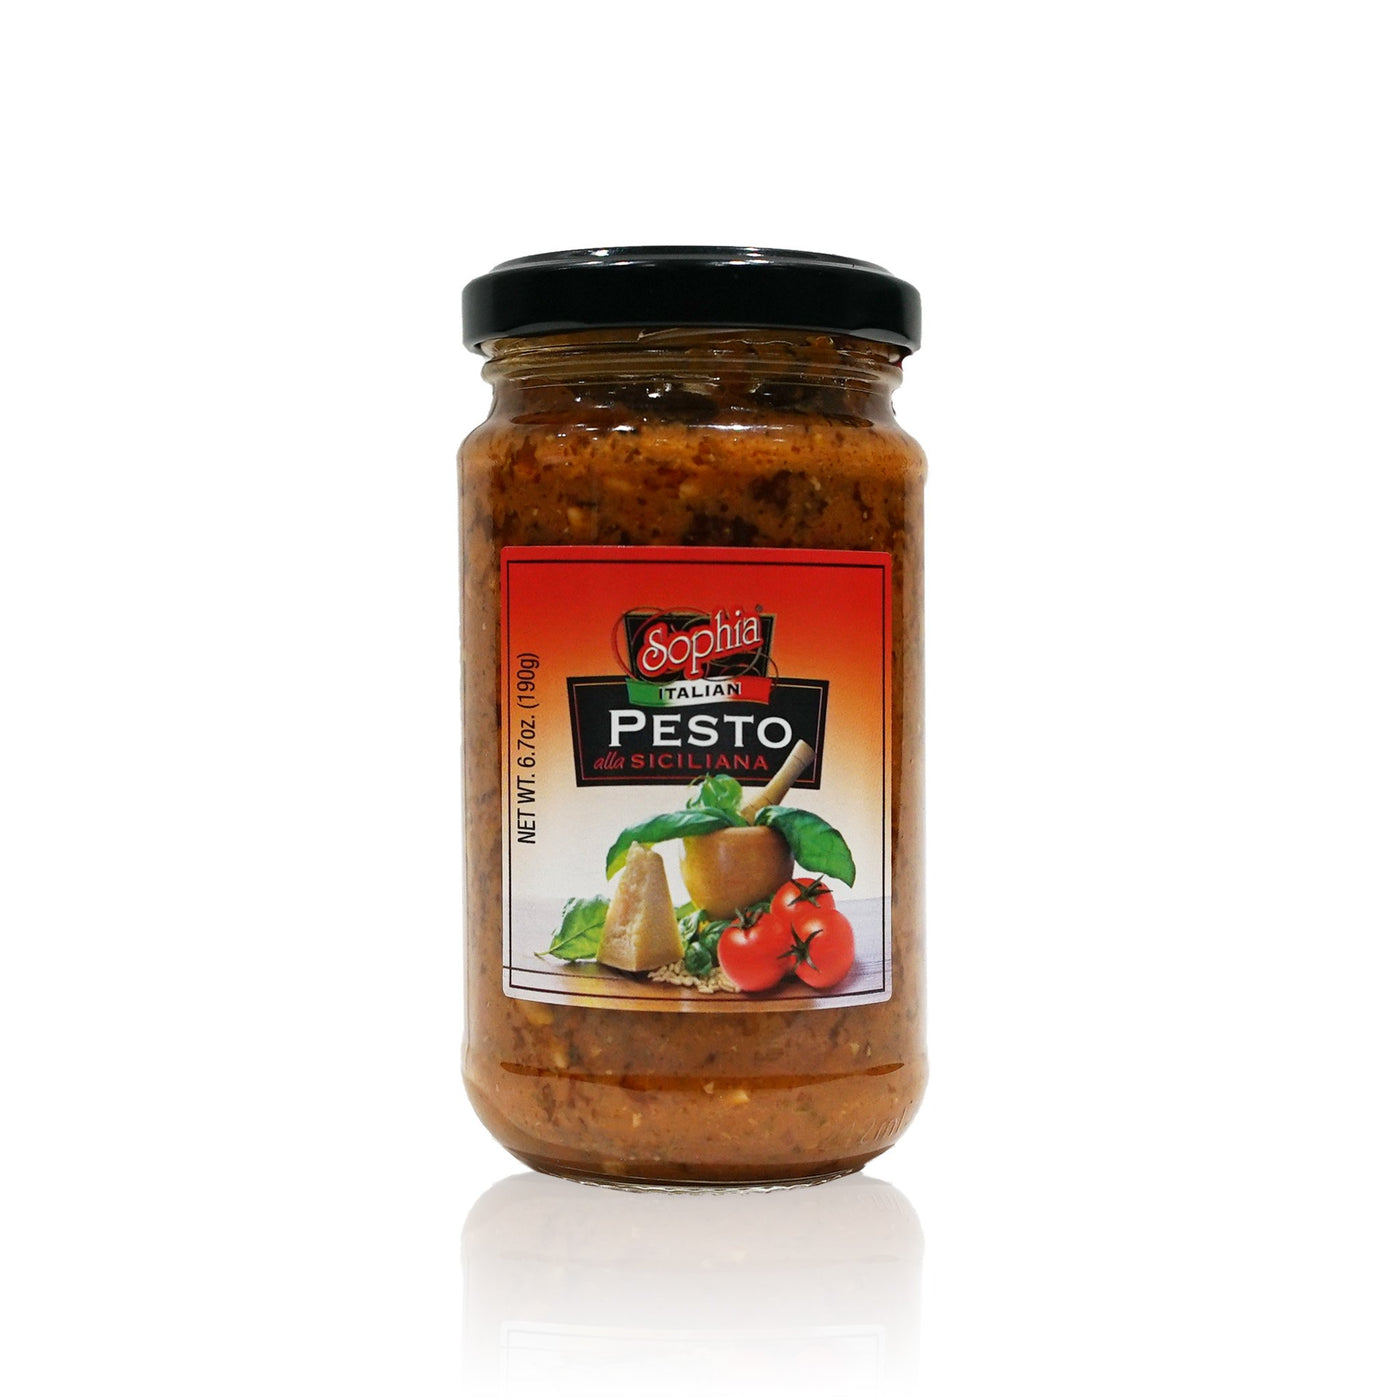 Sophia Pesto-Red Sun dried Tomato from Italy 6.7oz